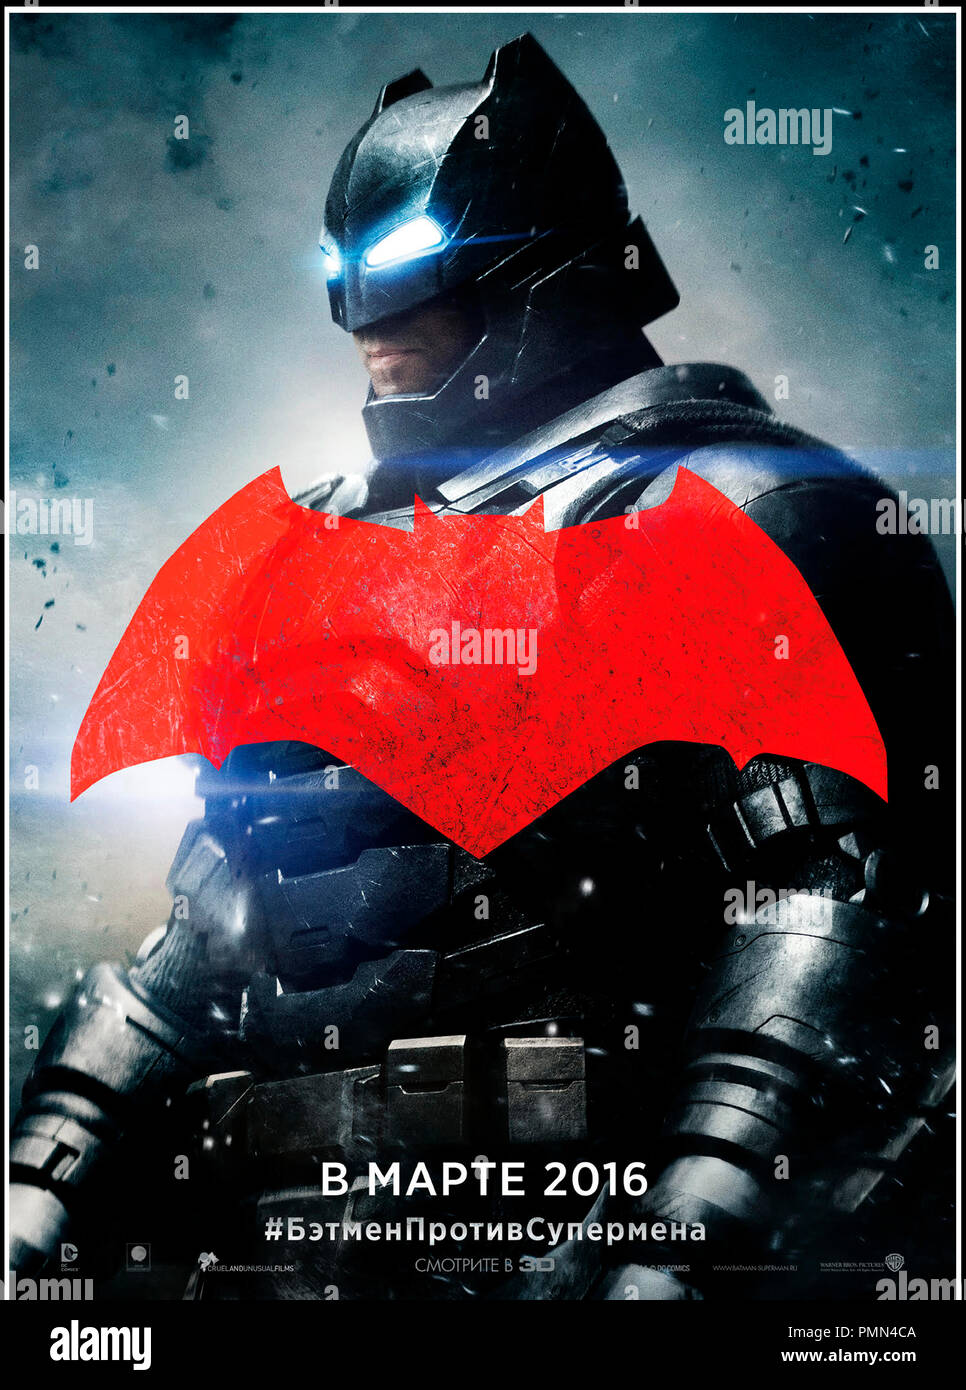 Prod DB © Warner Bros. - DC Entertainment - RatPac-Dune Entertainment - Syncopy / DR BATMAN V SUPERMAN: L'AUBE DE LA JUSTICE (BATMAN VS. SUPERMAN: DAWN OF JUSTICE) de Zack Snyder 2016 USA teaser russe super heros d'apres les personnages créés par Bob Kane et Bill Finger (Batman) et Jerry Siegel et Joe Shuster (Superman) - Stock Image